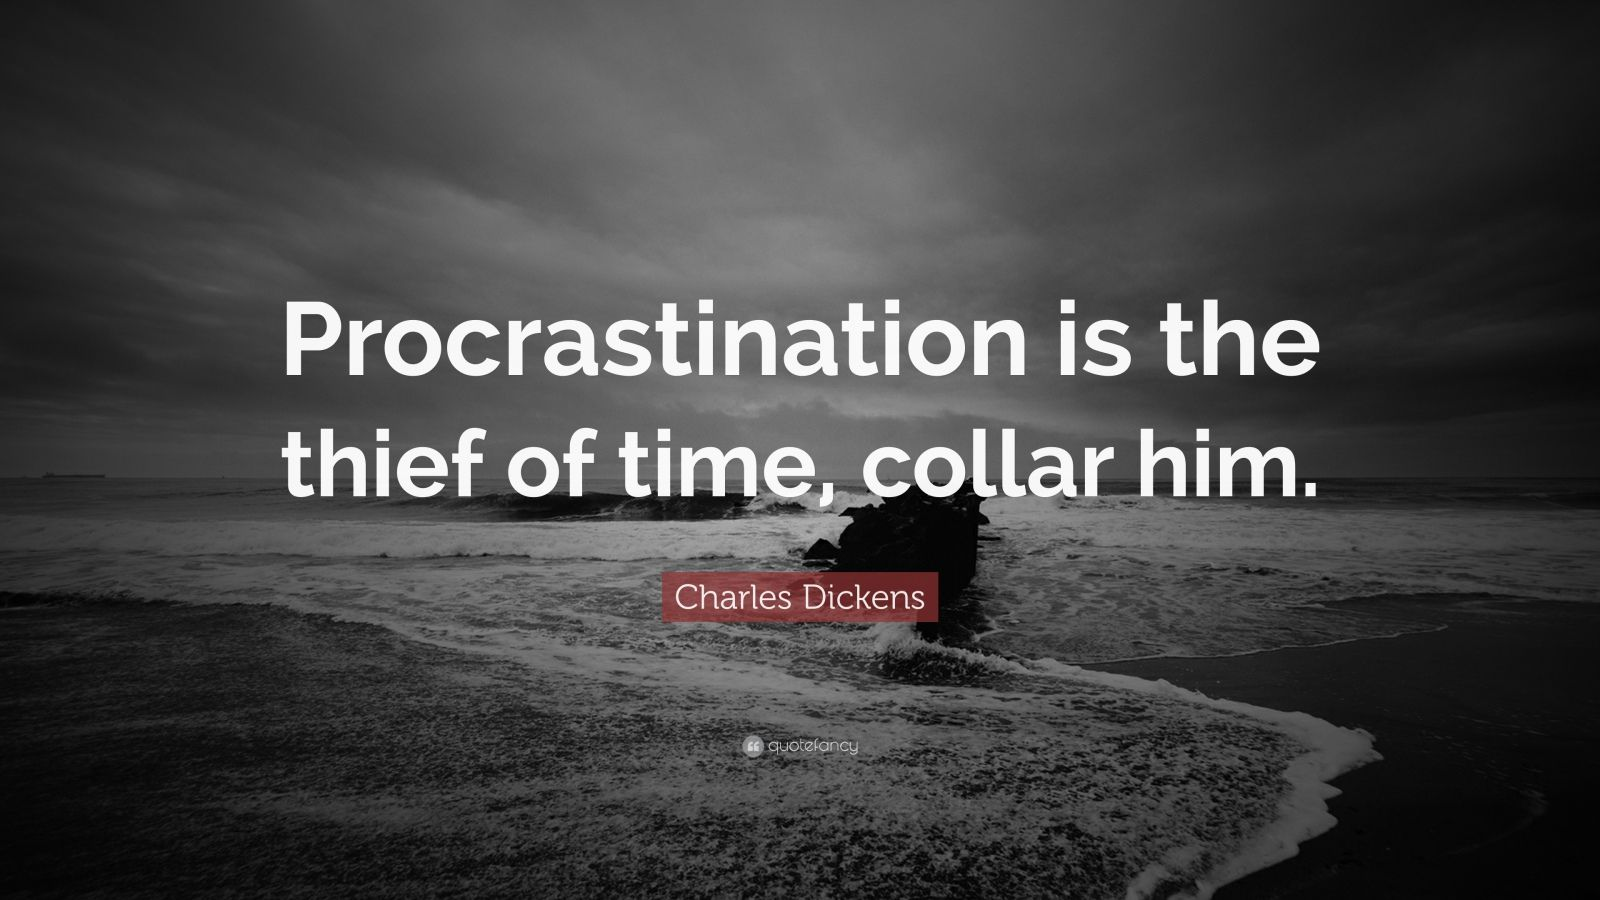 the thief of time philosophical essays on procrastination Does procrastination mean we don't care about our future self procrastination: is your future self getting a bad deal the thief of time: philosophical essays on procrastination (pp 115-129) new york.